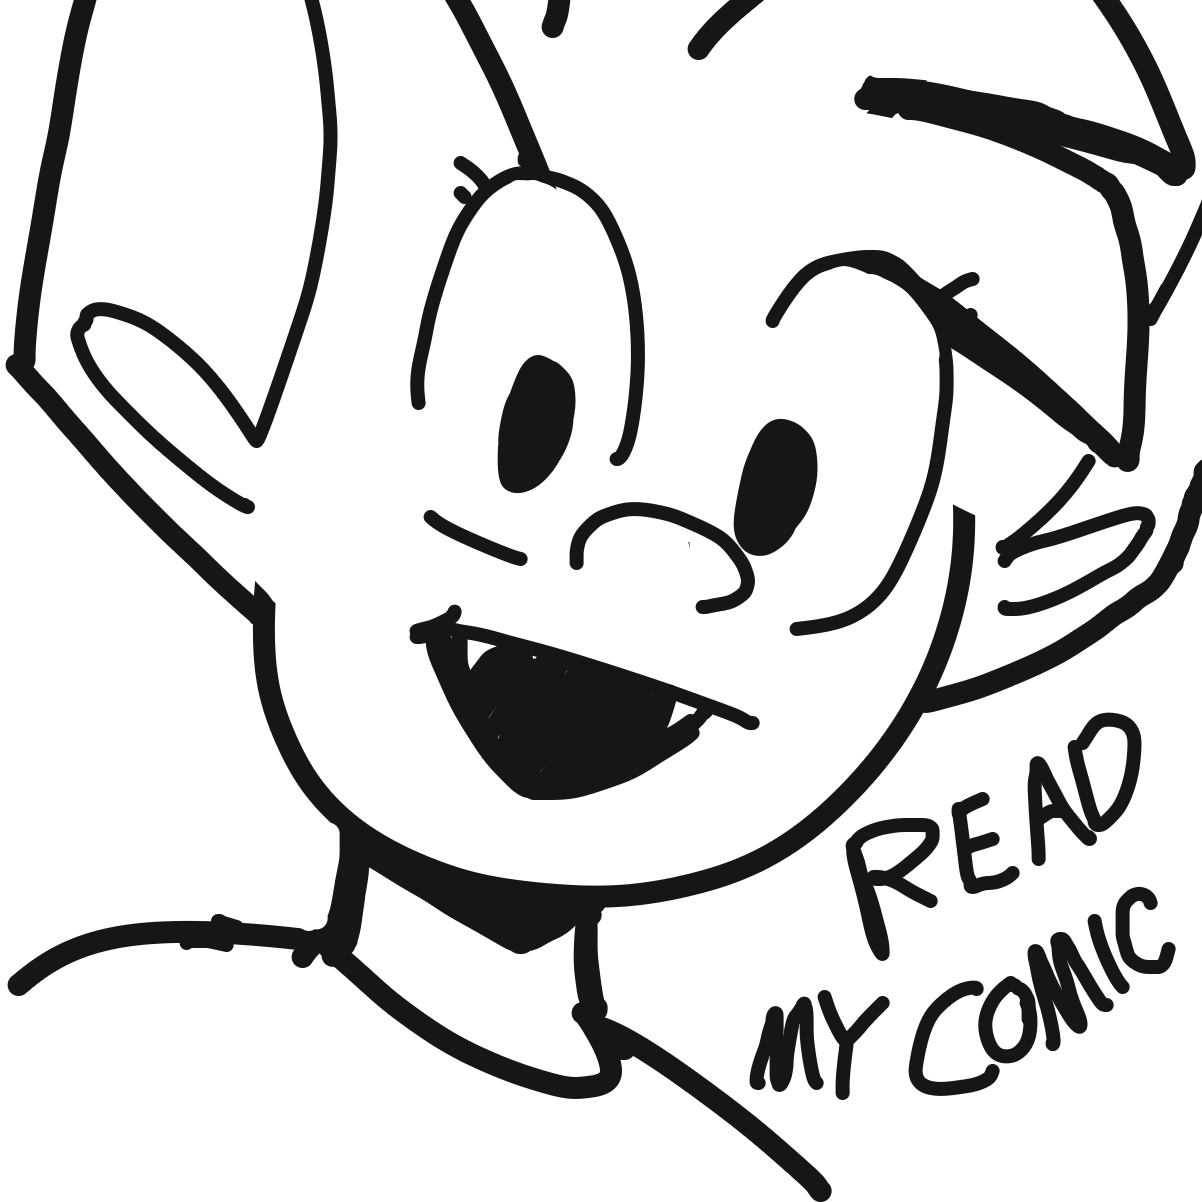 Profile picture for the comic strip artist, superstar_pixie